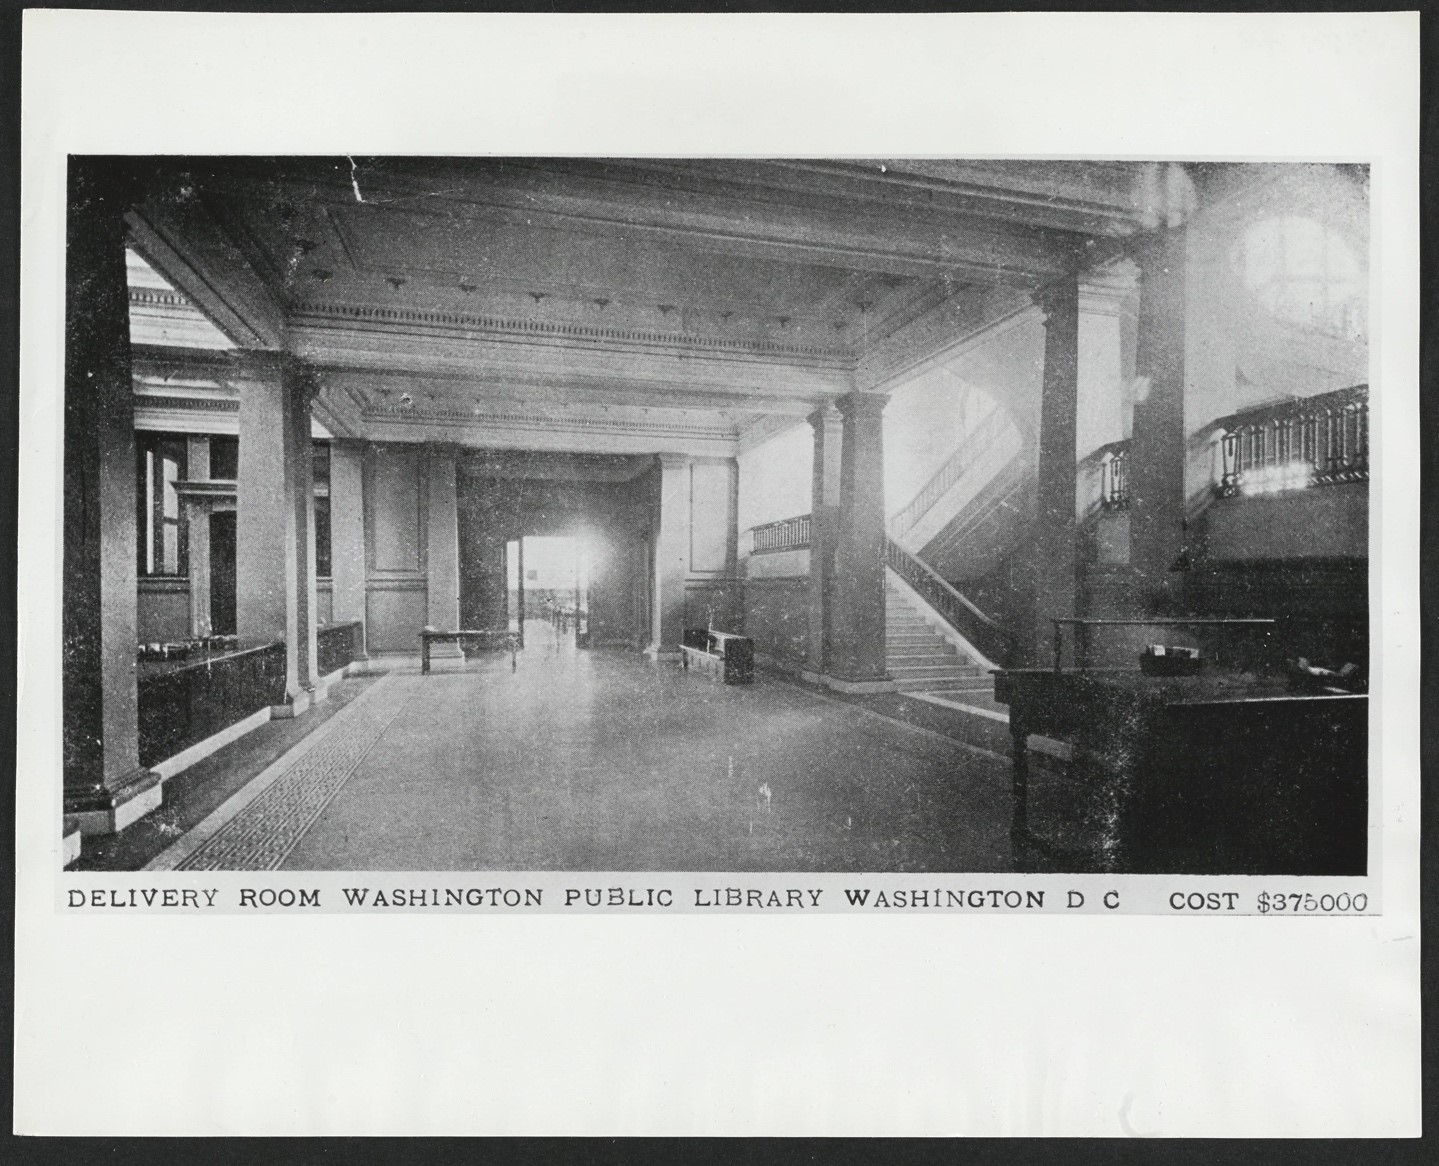 The interior of a large room. Plentiful sunshie pours through windows into the room. Work desks are featured along the walls. A staircase leads upward. An original caption at the bootom of the picture reads: Delivery room Washignton Public Library, Washington DC Cost $375000""